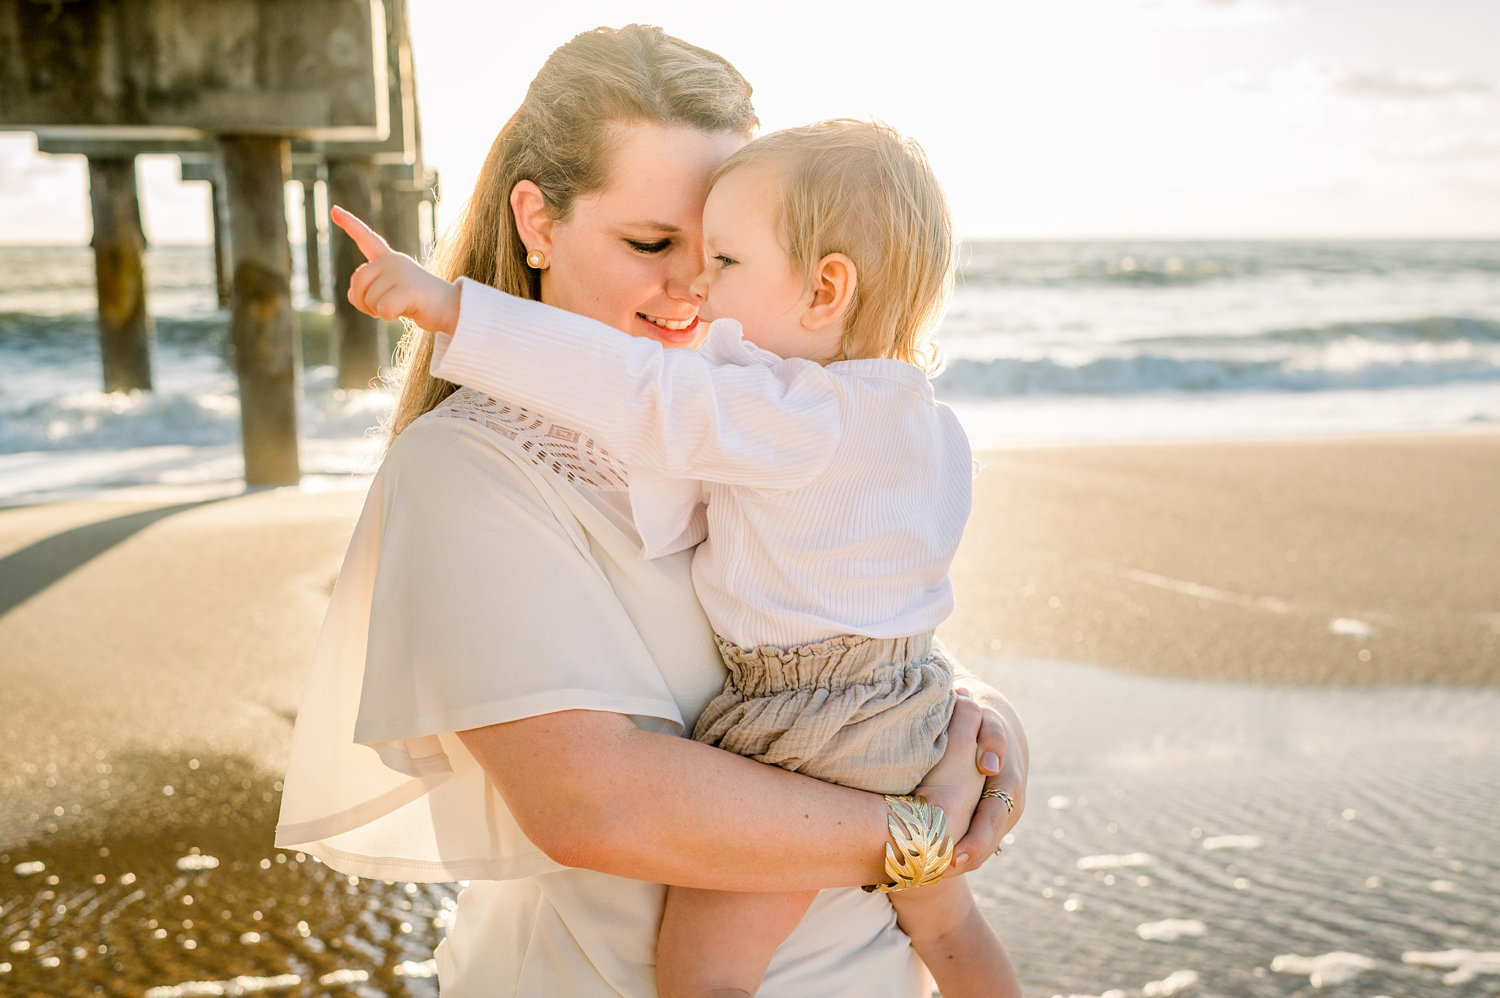 mother smiling down at baby daughter, little girl pointing at the beach, Rya Duncklee